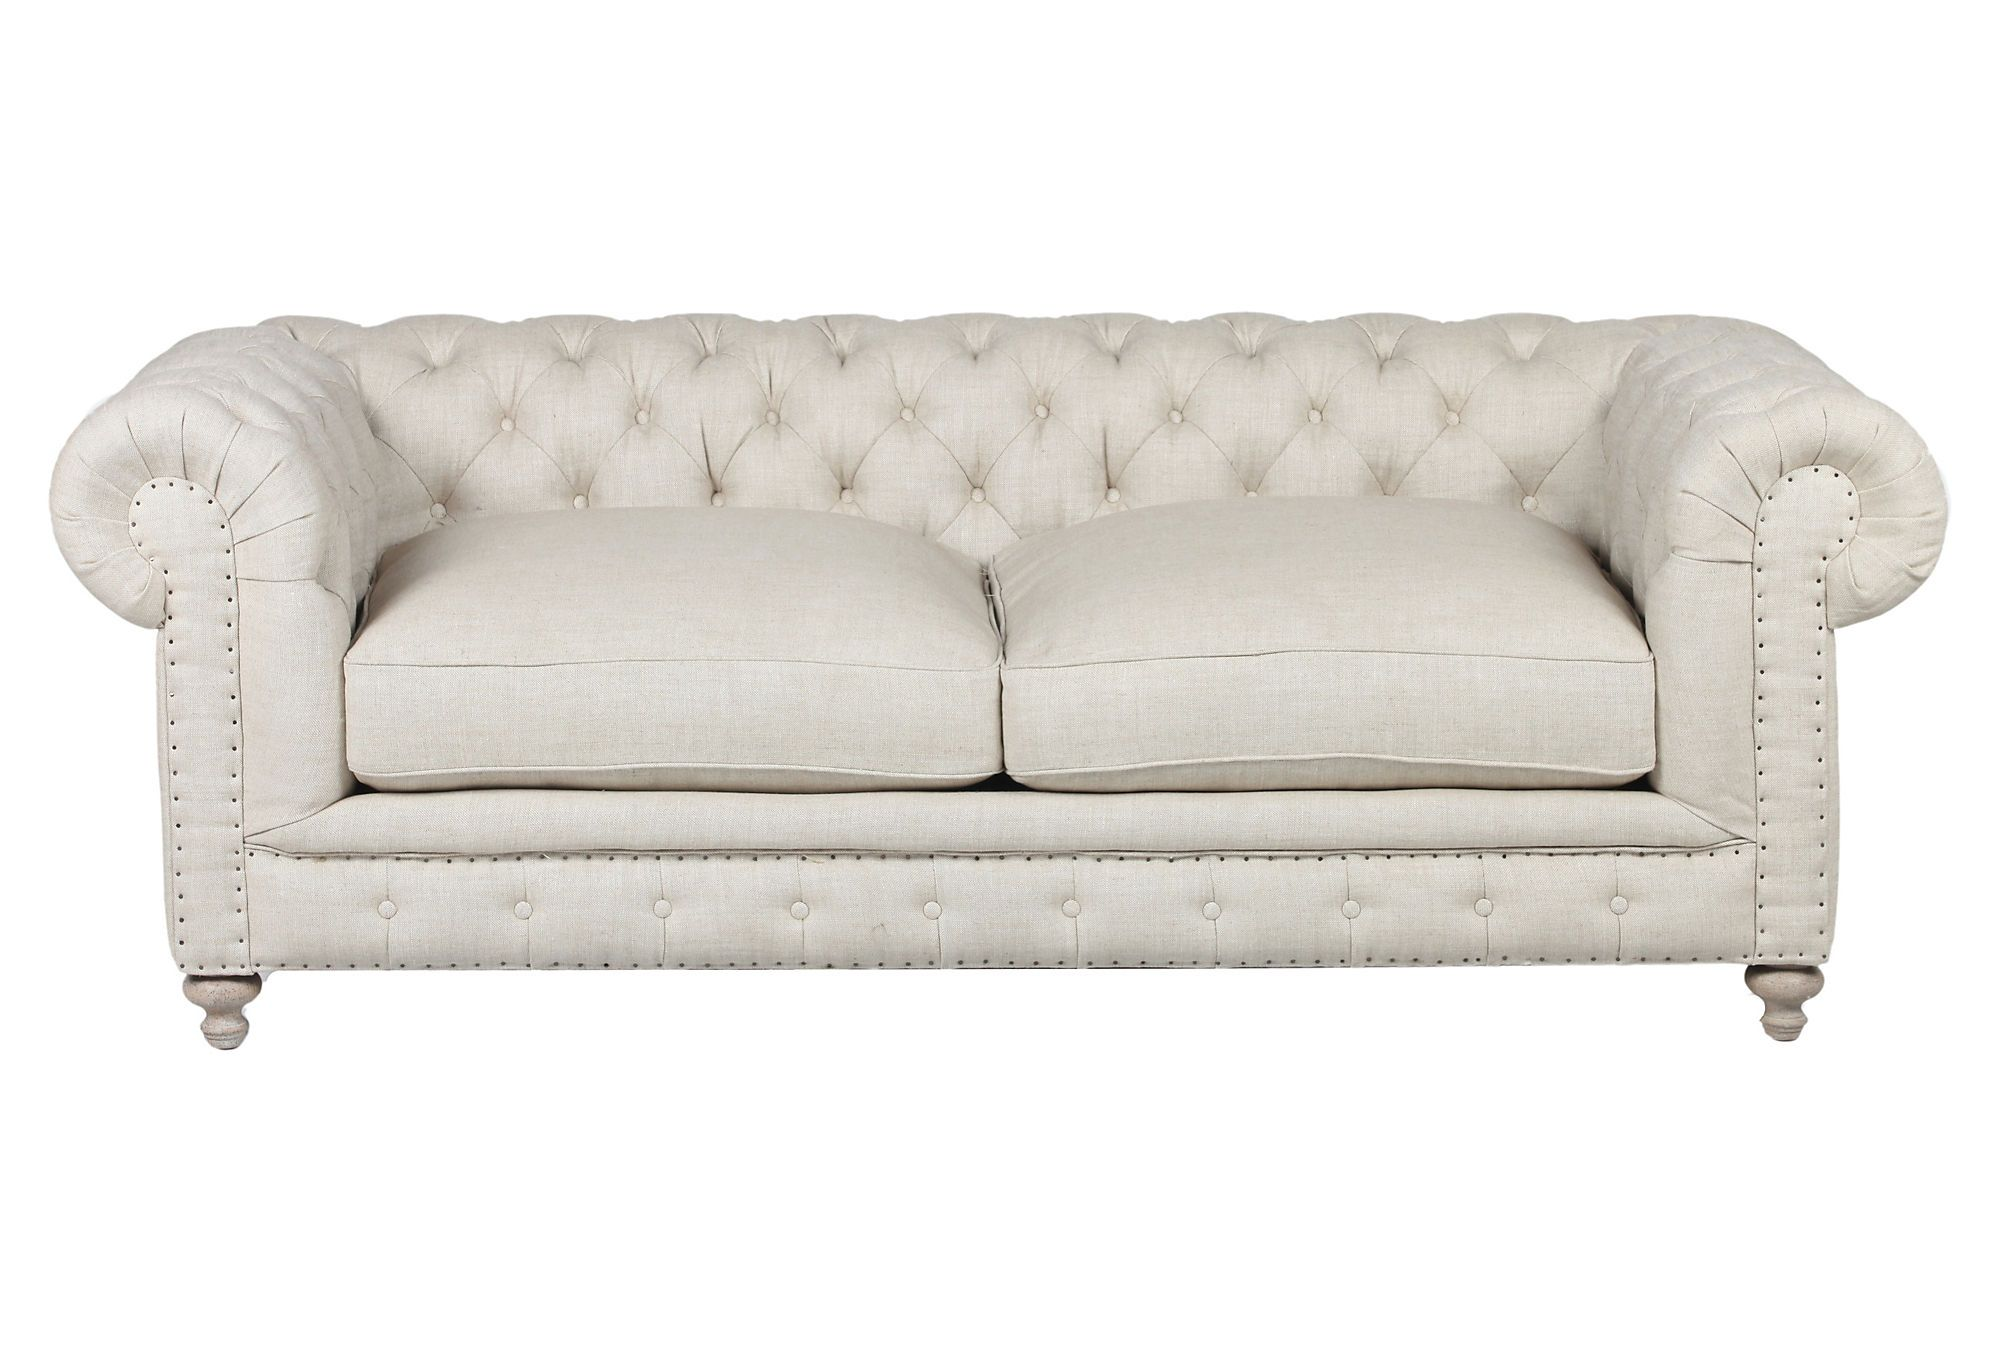 If I Were To Do A Chesterfield Sofa This Would Be The One.